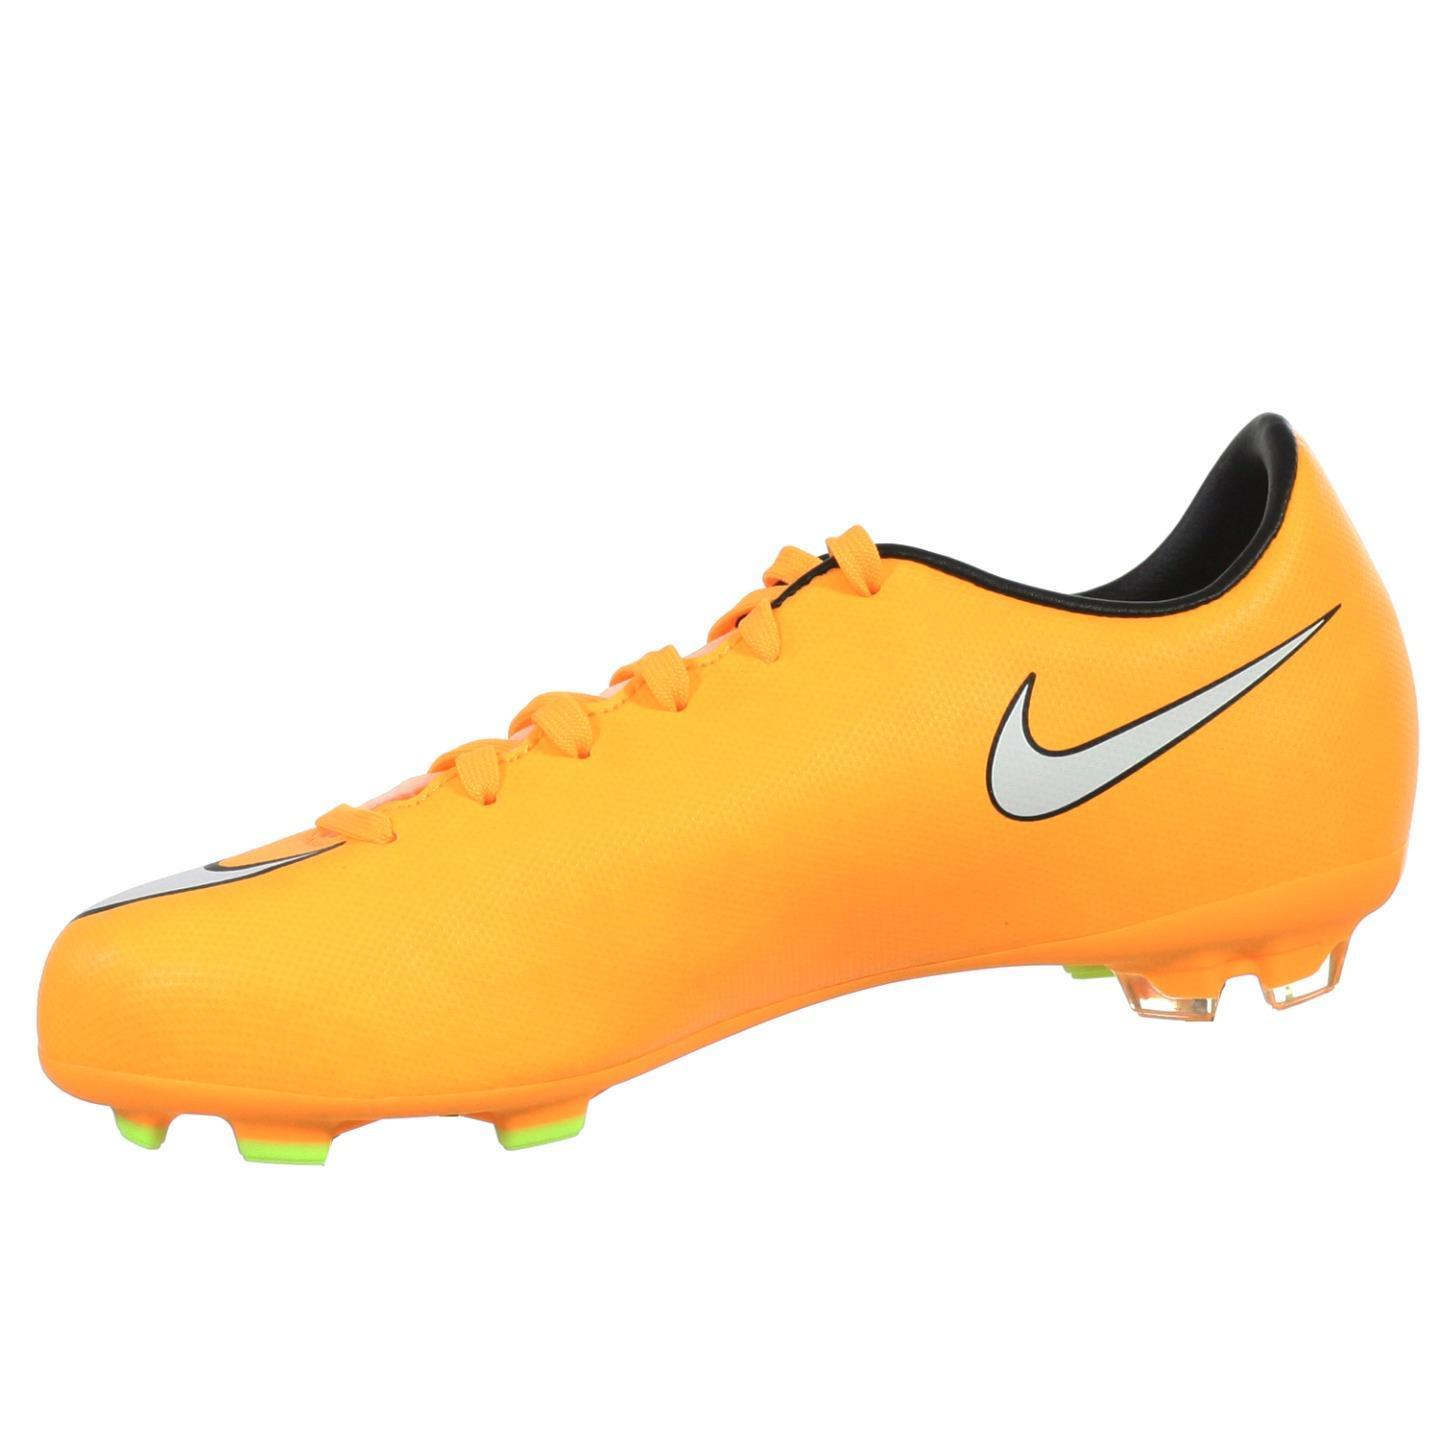 separation shoes 6b012 e11e2 Shop NIKE JR MERCURIAL VICTORY V FG Youth Soccer Cleat - Free Shipping  Today - Overstock - 15341567